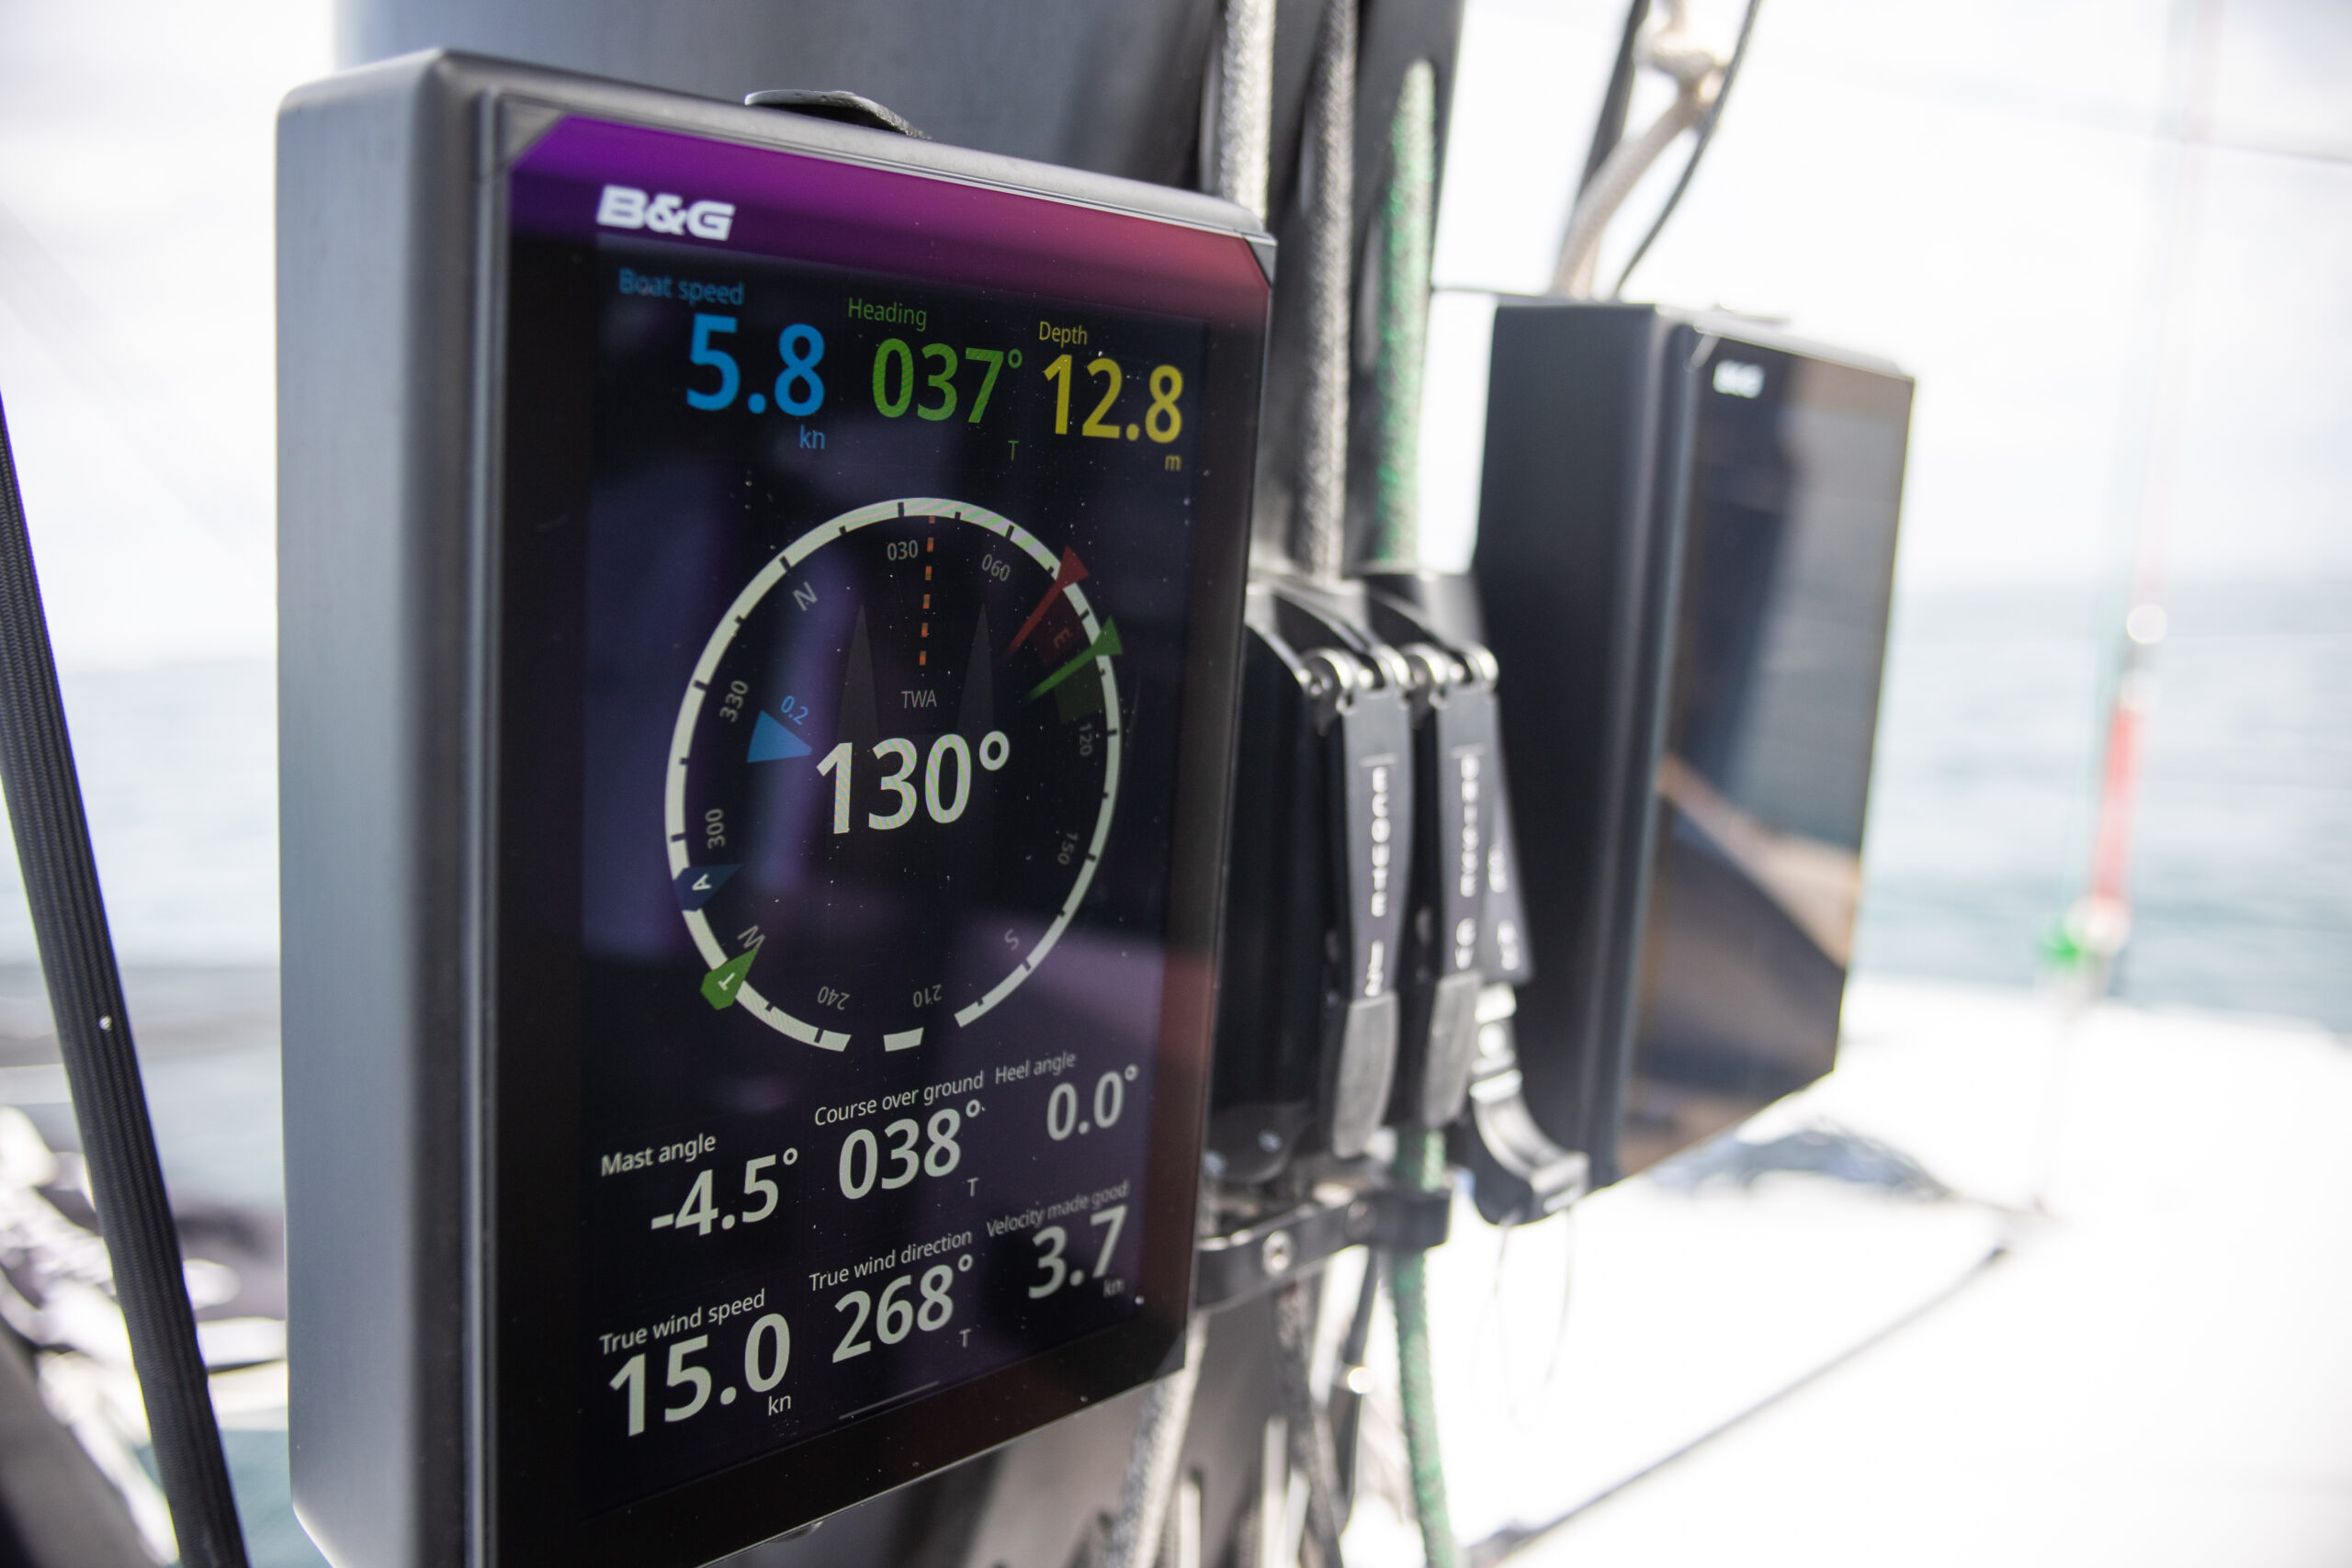 close up of control panel from Navico onboard a vessel